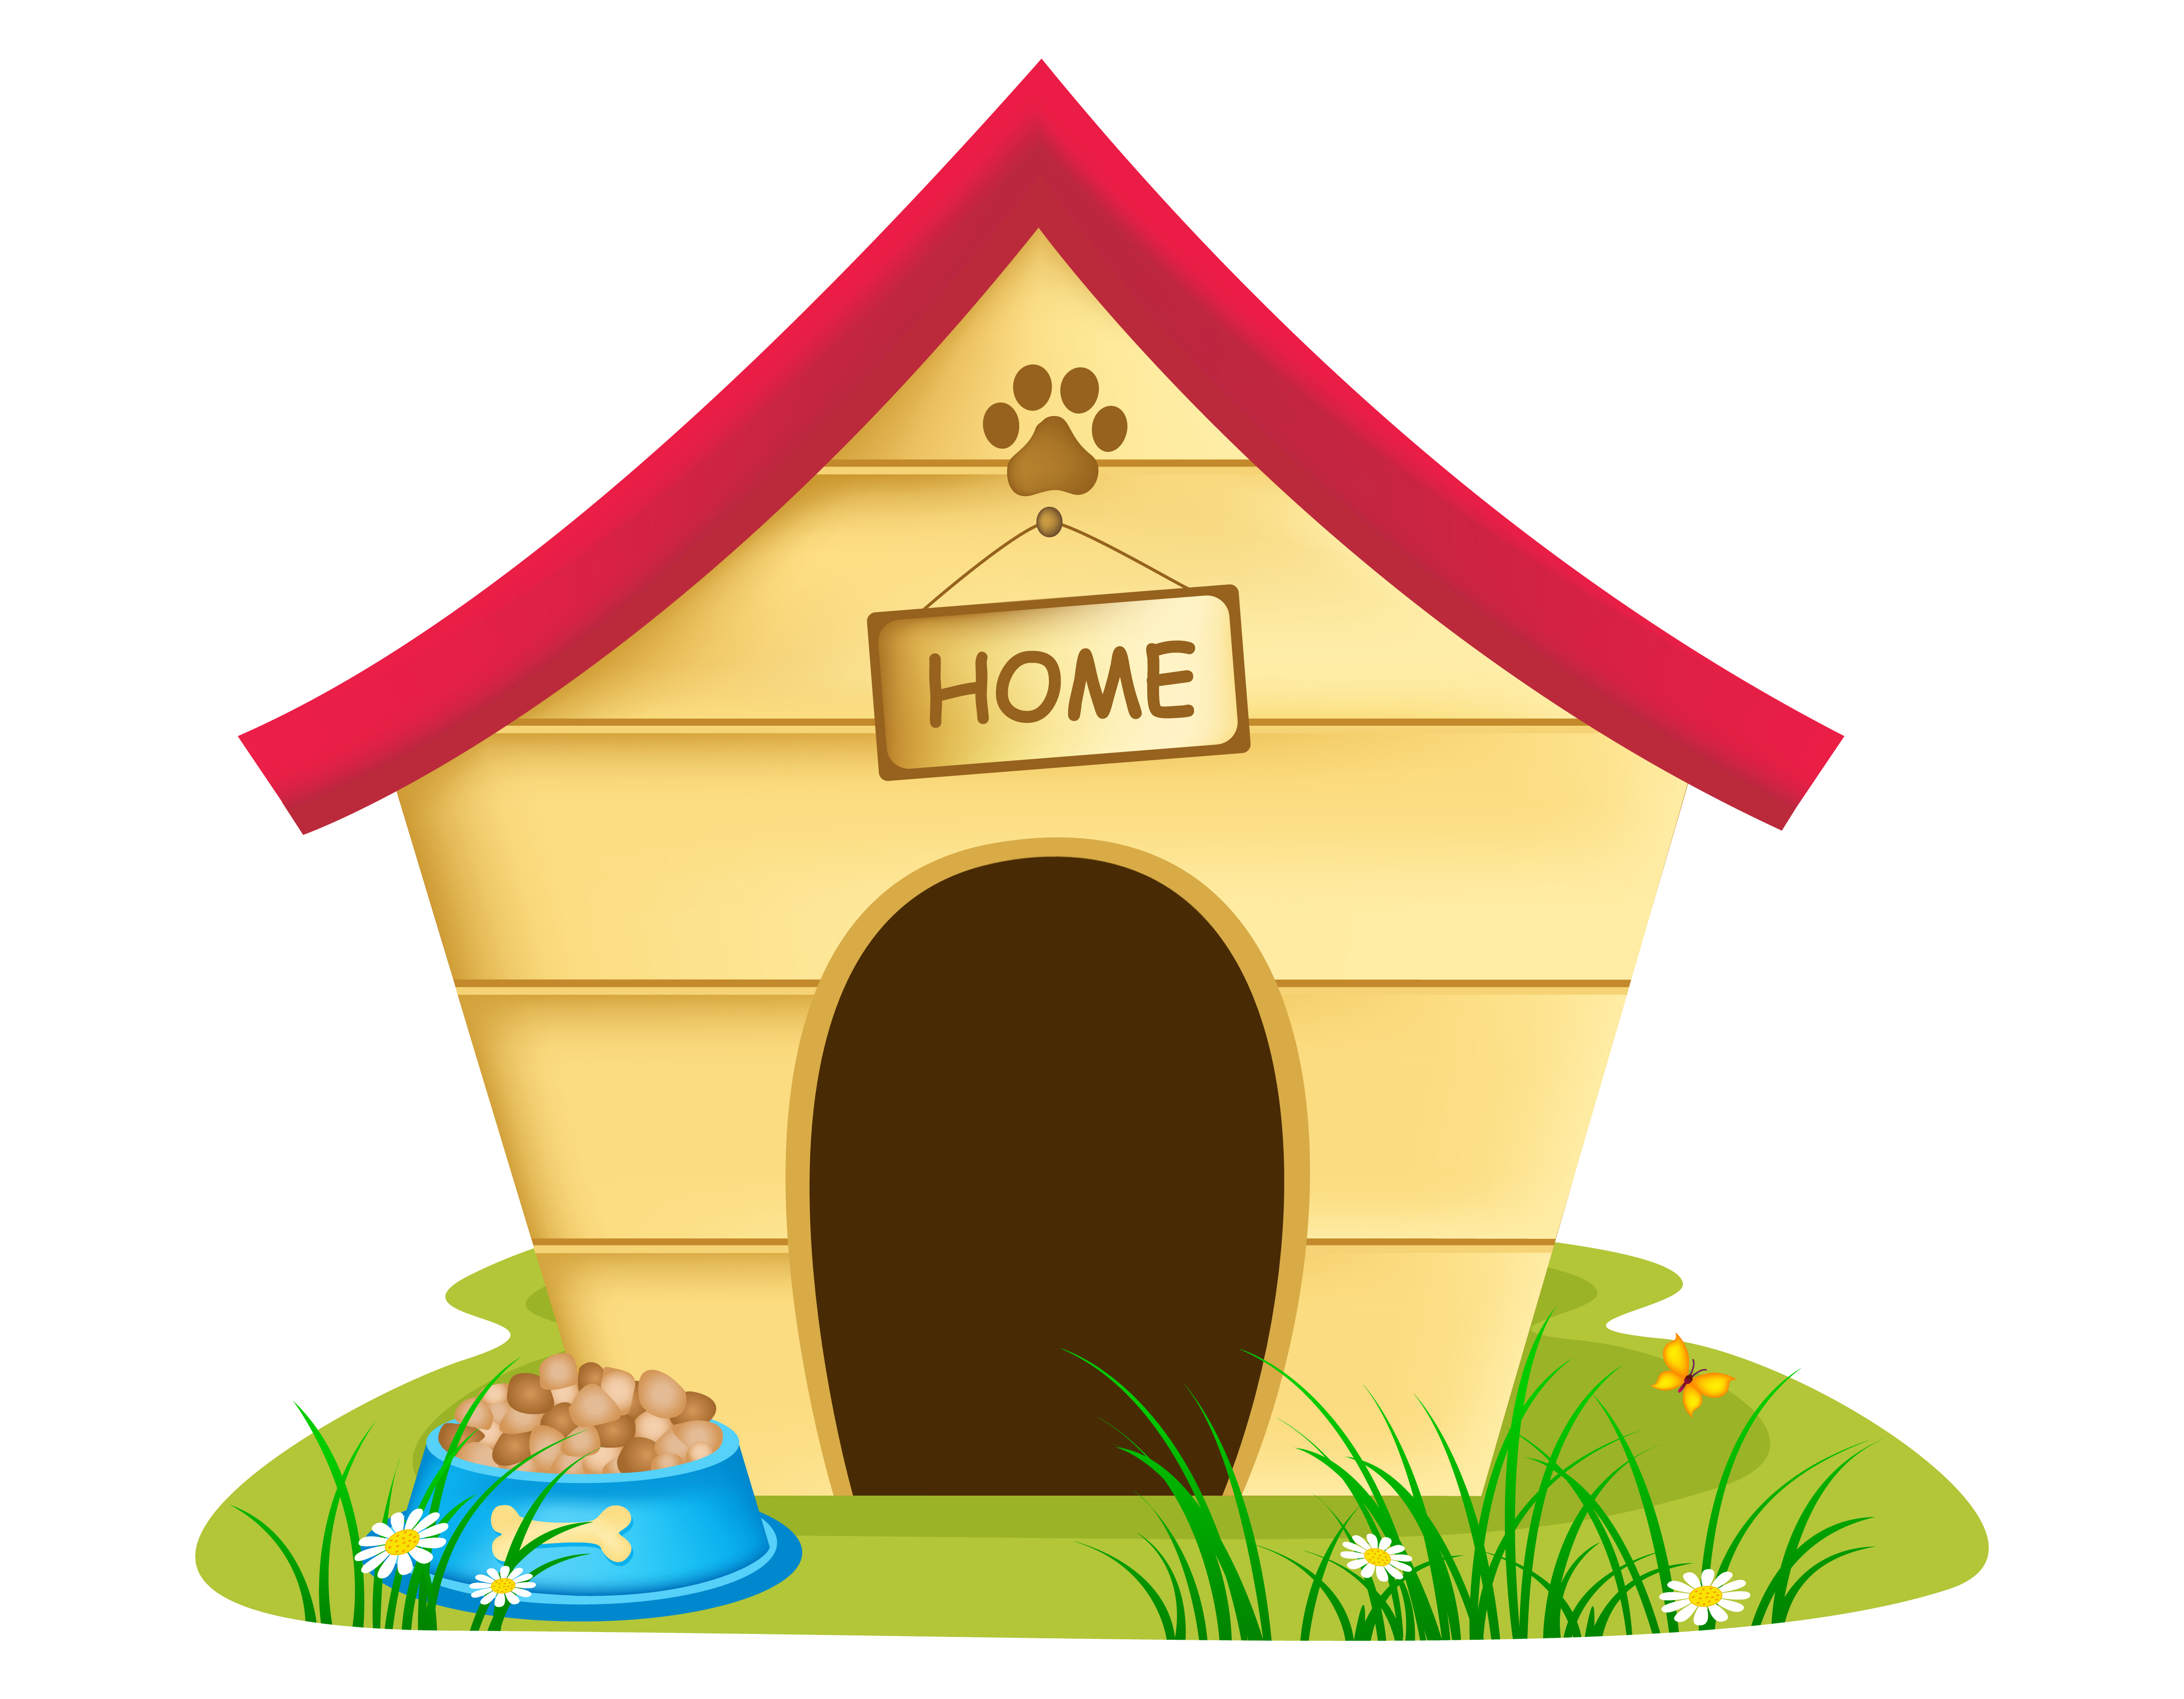 Doghouse clipart pet house. Building or renovating a